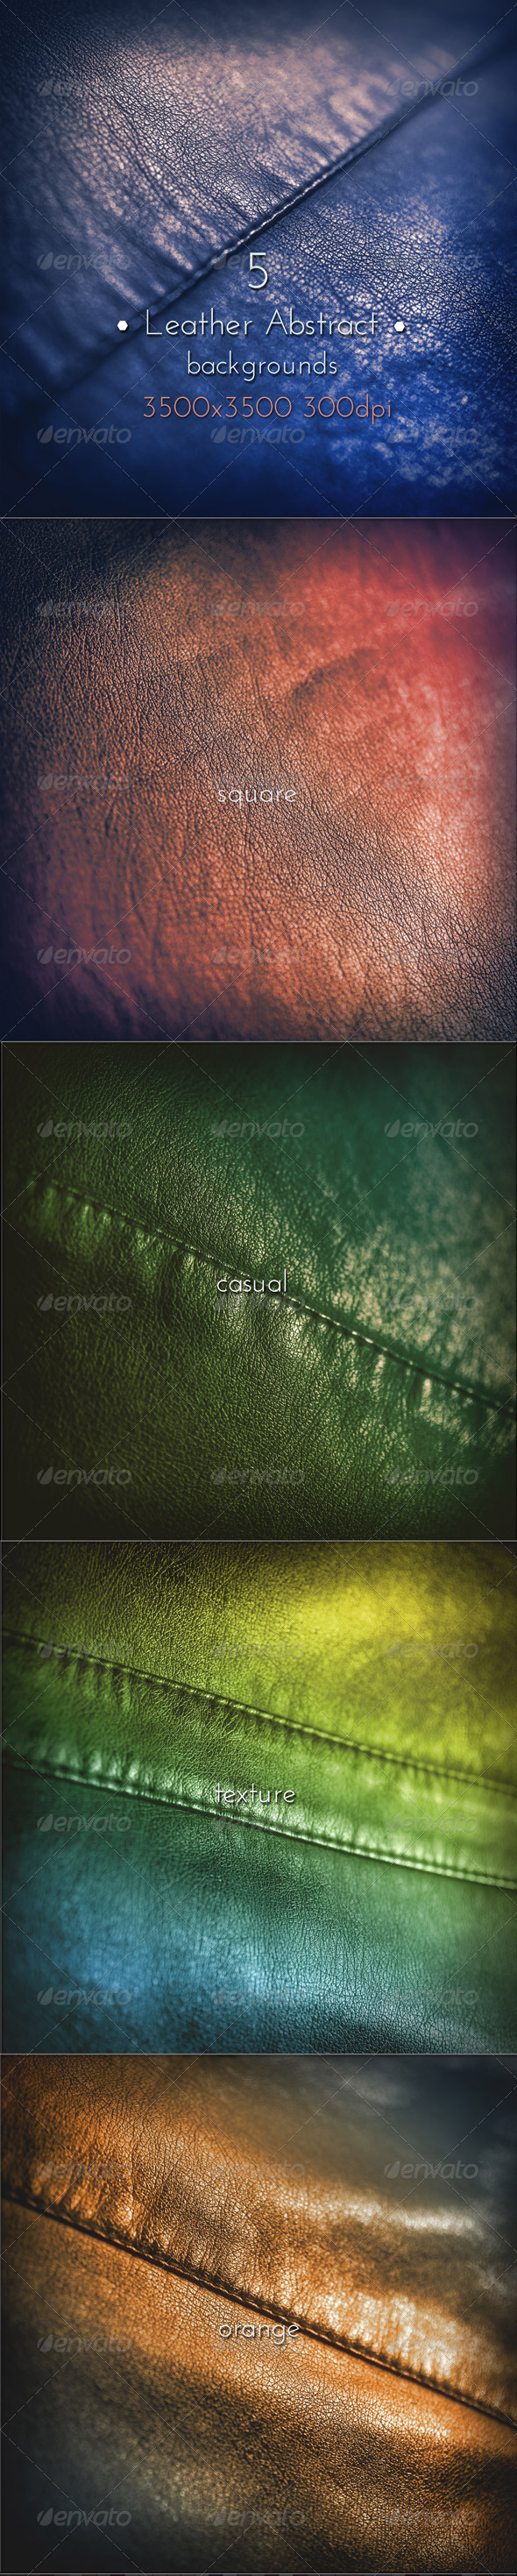 GraphicRiver Leather Abstract Grunge Collection 8604532